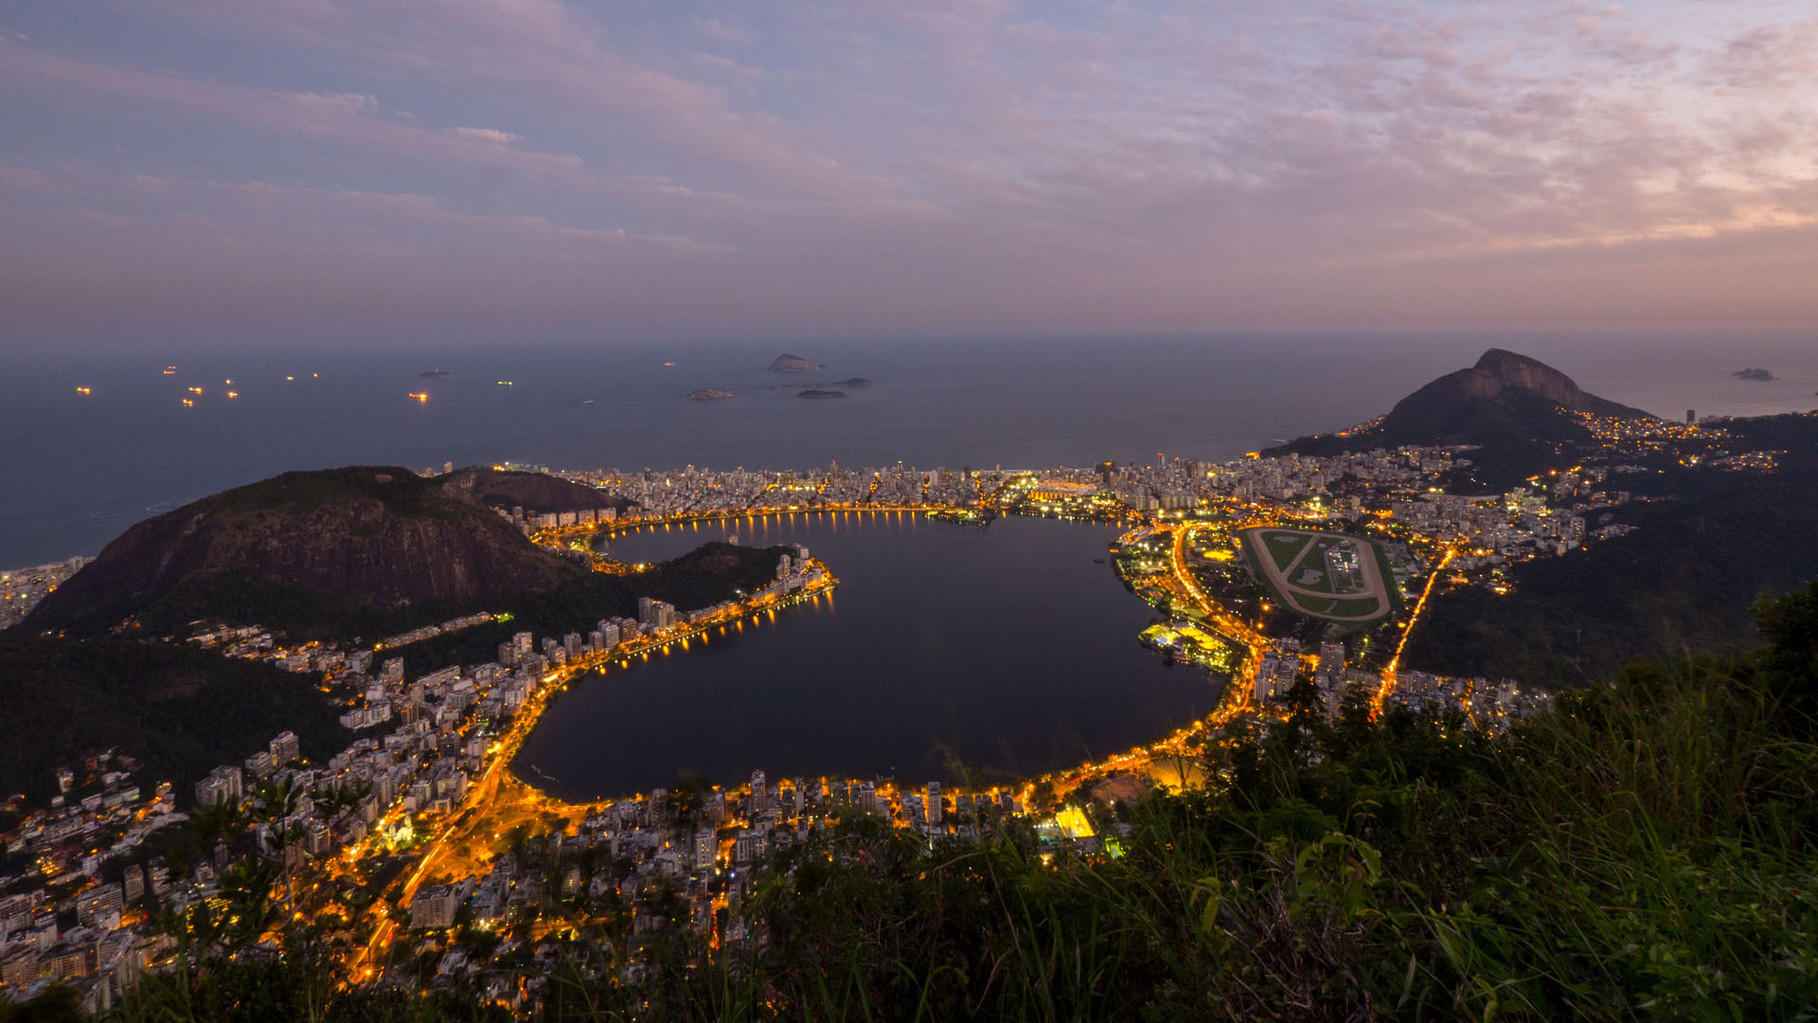 Rio by night, panoramic view from Corcovado [Brazil, 2014]